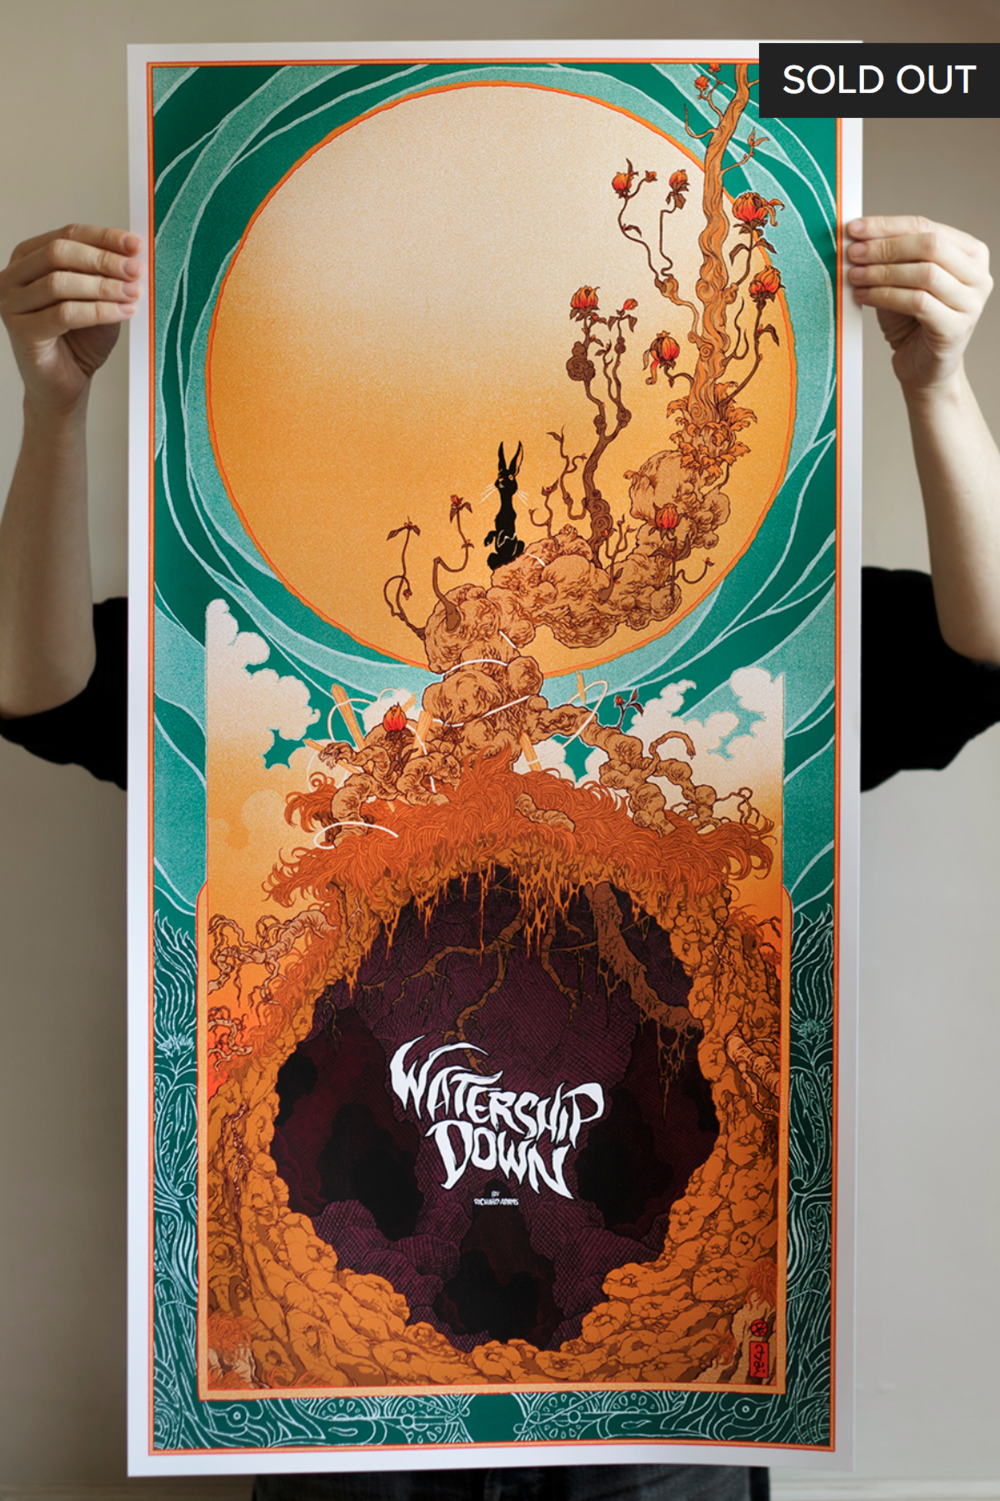 'Watership Down' AP - SOLD OUTArtist's Proof copy9-colour screen print, signed and numberedPrinted by D&LOnly 15 were made, and hardly any remain!€110.00 + shipping